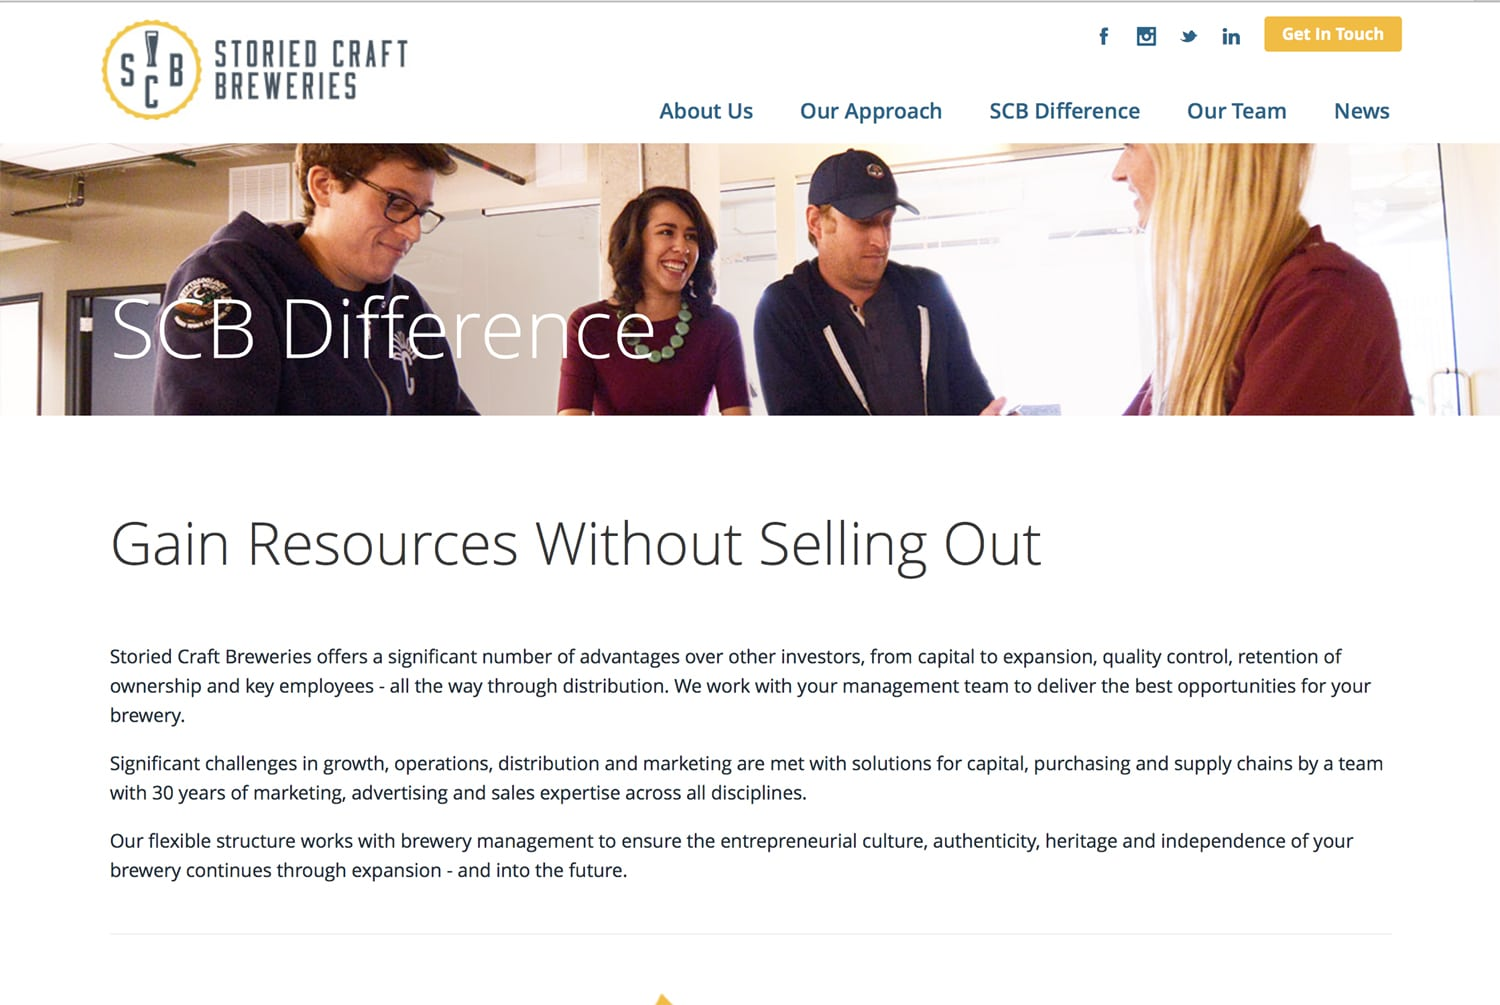 Storied Craft Breweries Gain Resources web page featuring a photo with young workers in discussion around a table. Corporate Photography